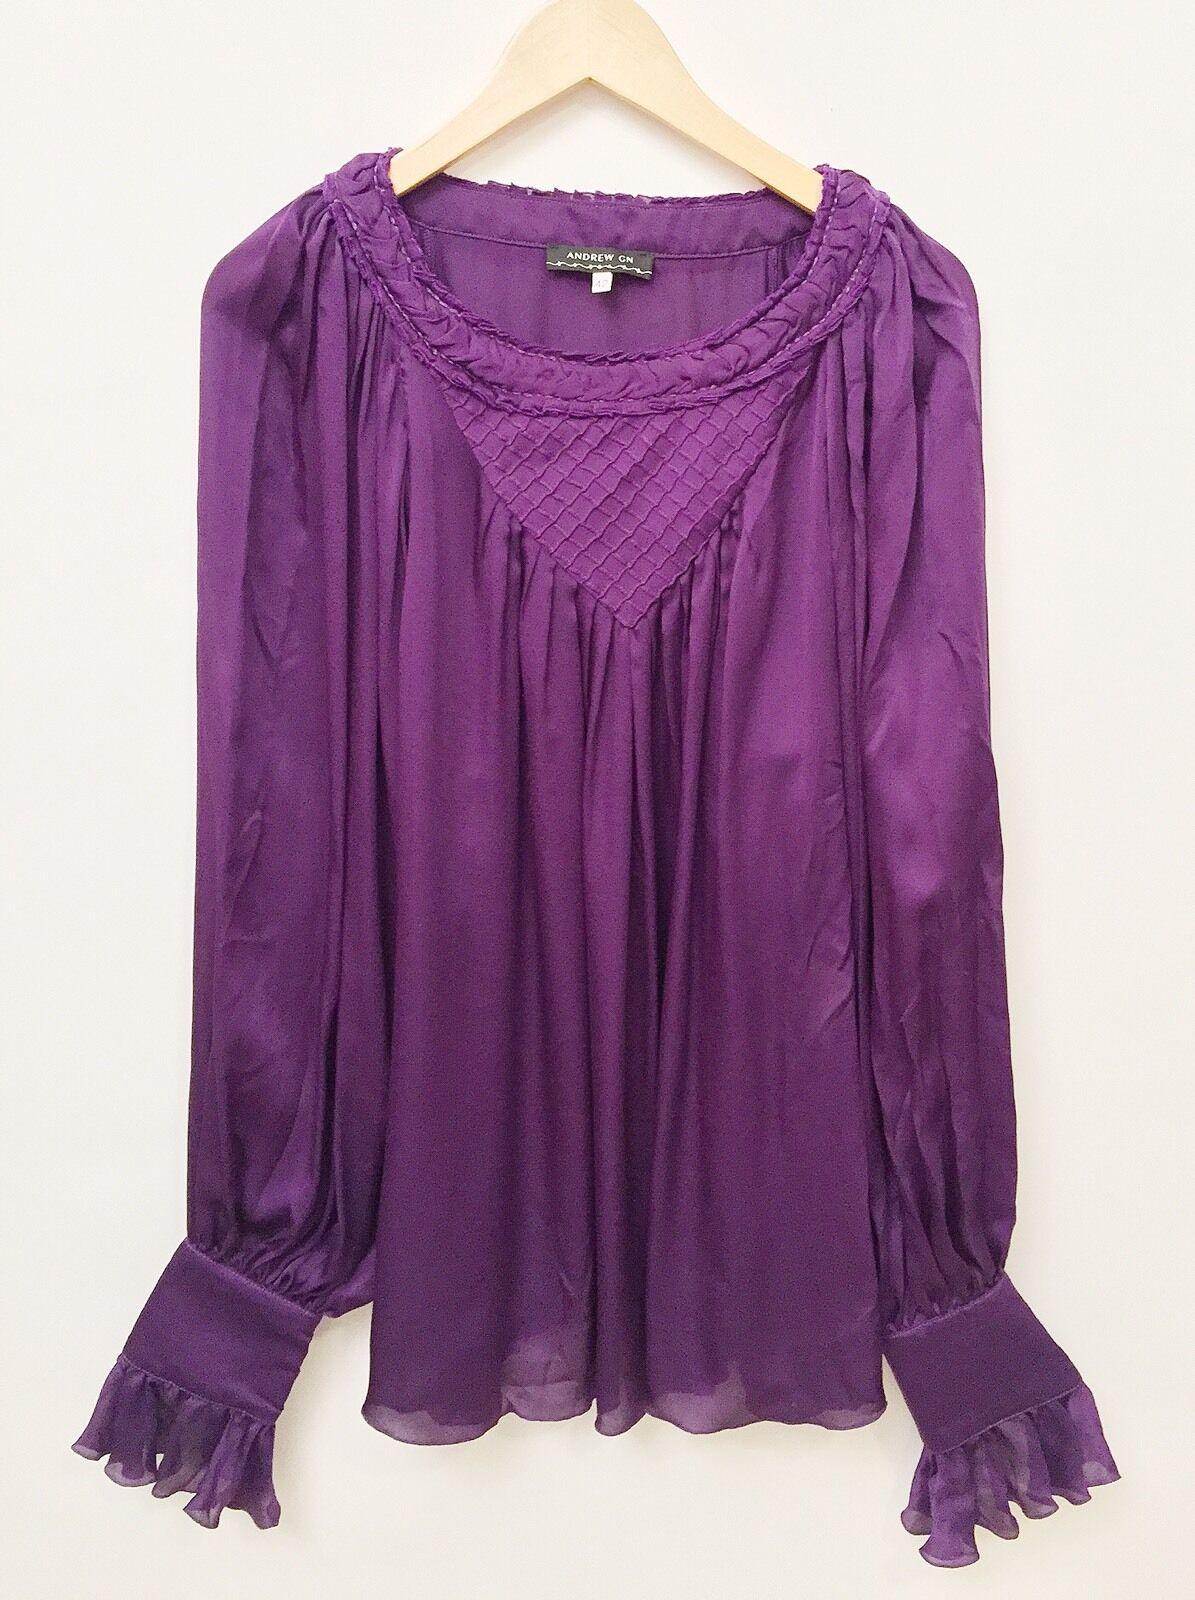 Andrew GN Purple Silk Long Sleeve Blouse Size 42